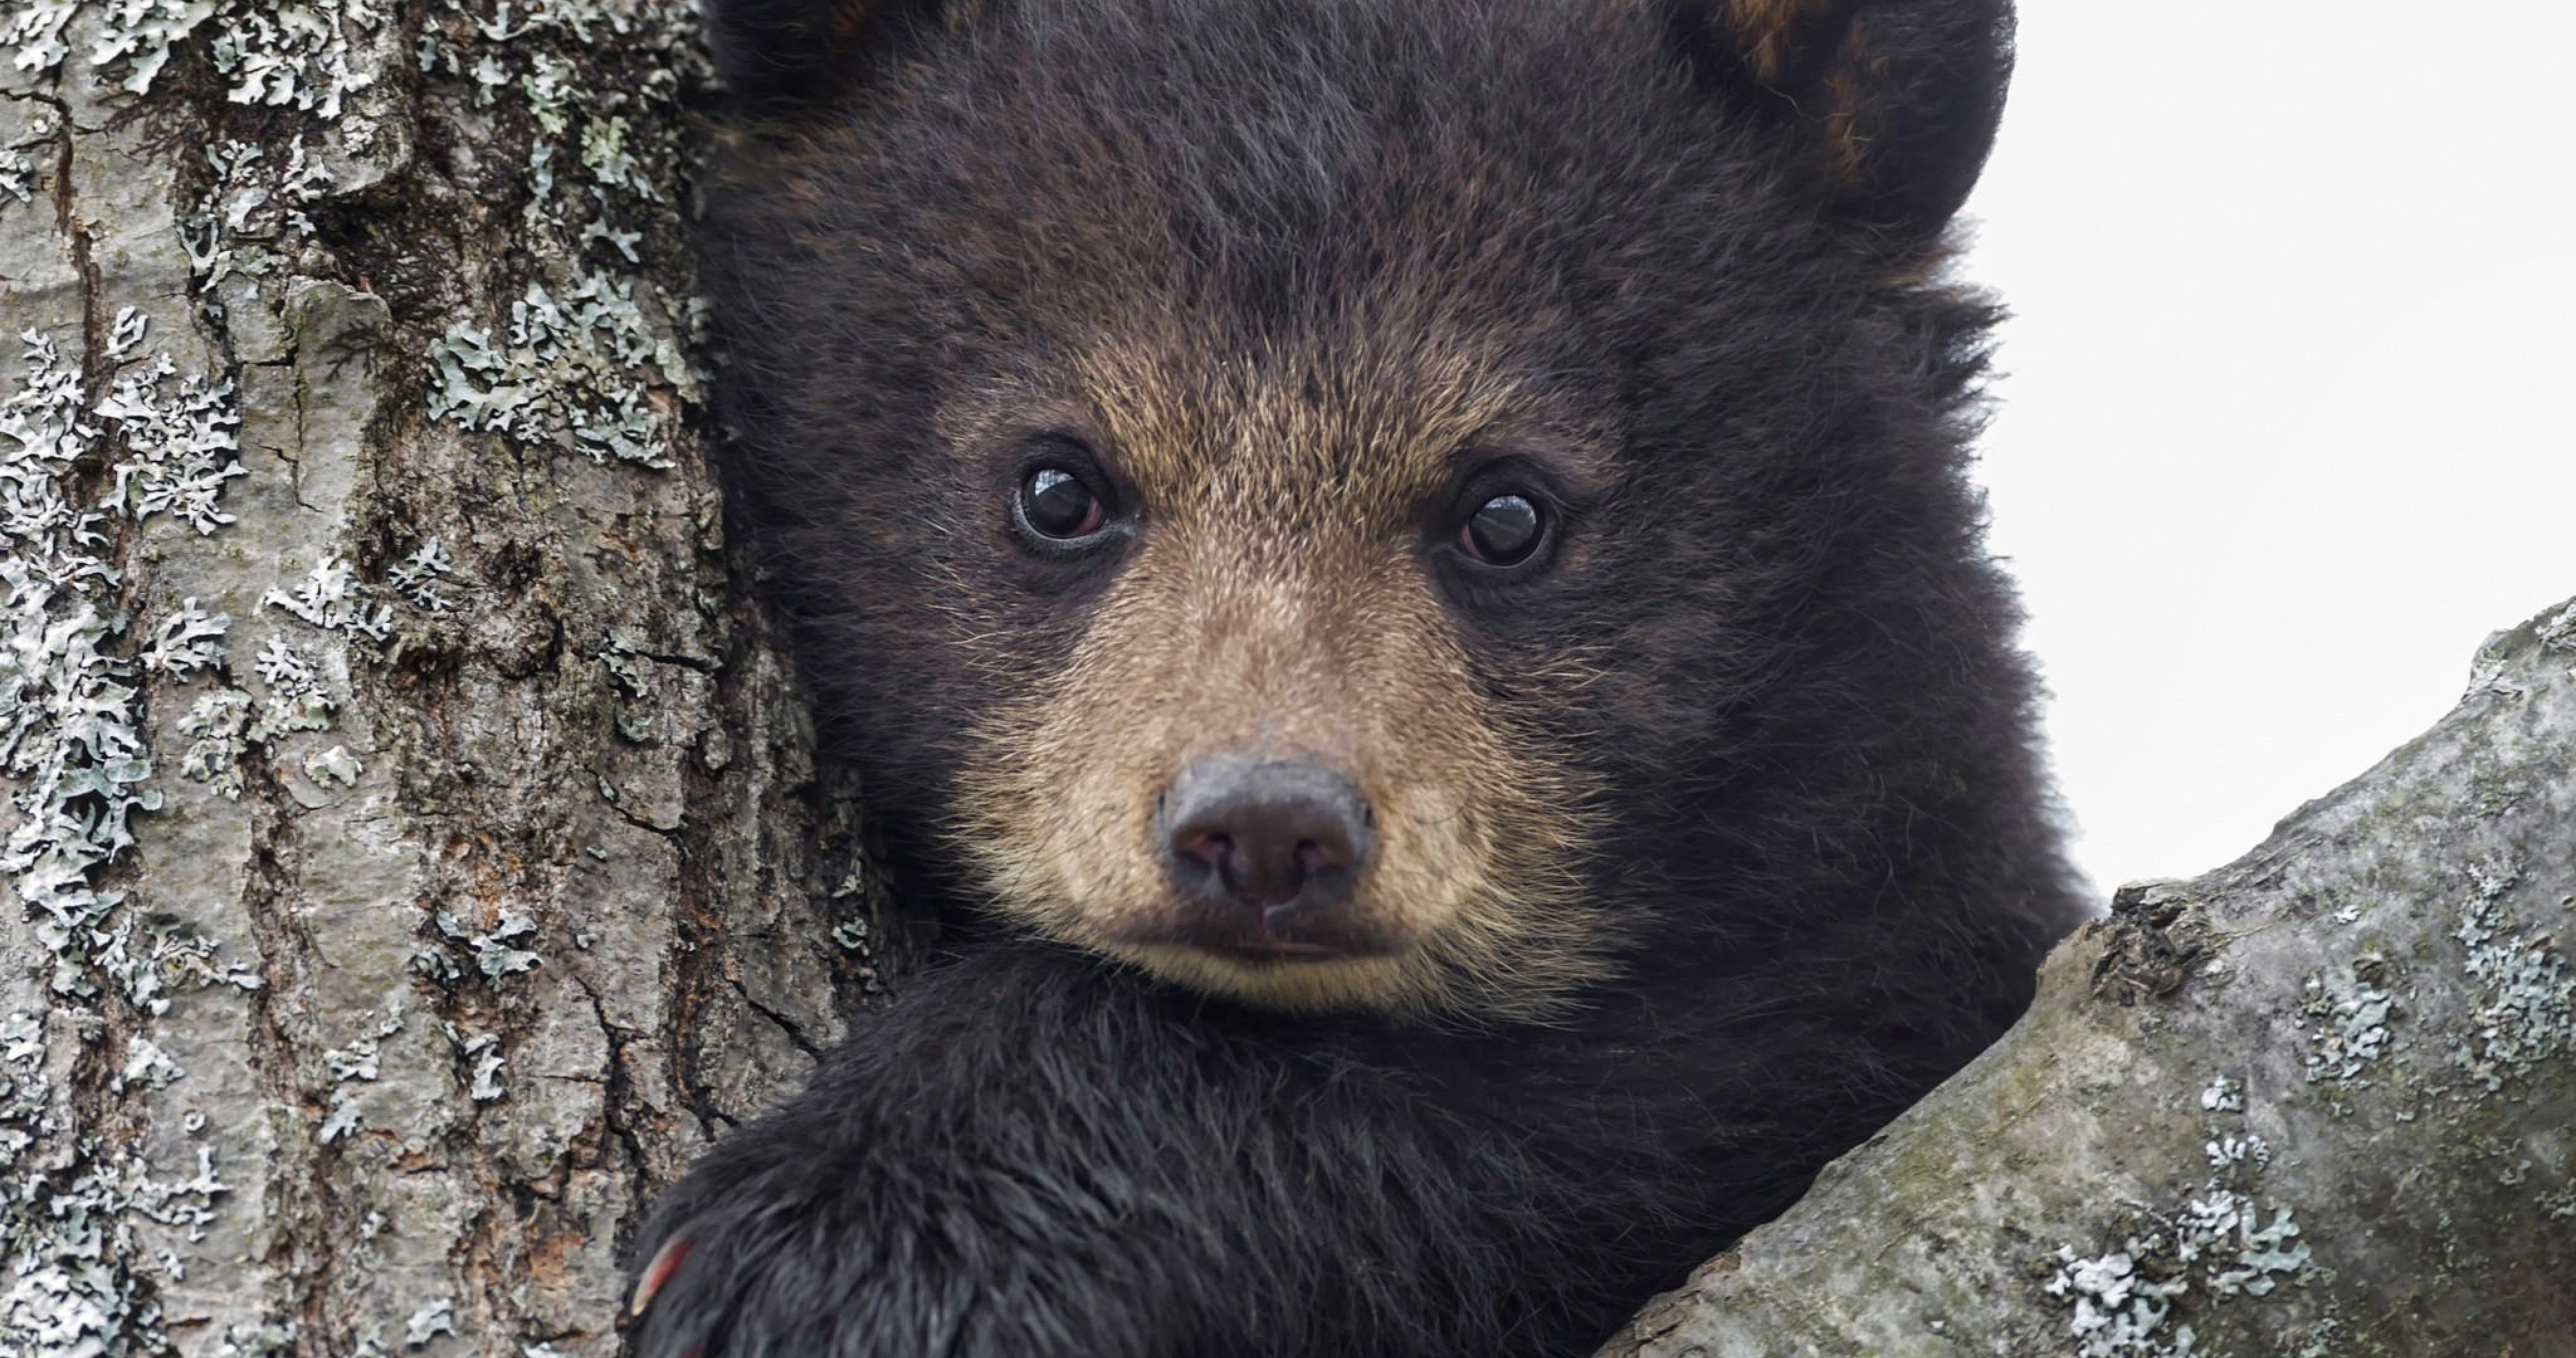 baby bear 4k ultra hd wallpaper ololoshenka Pinterest